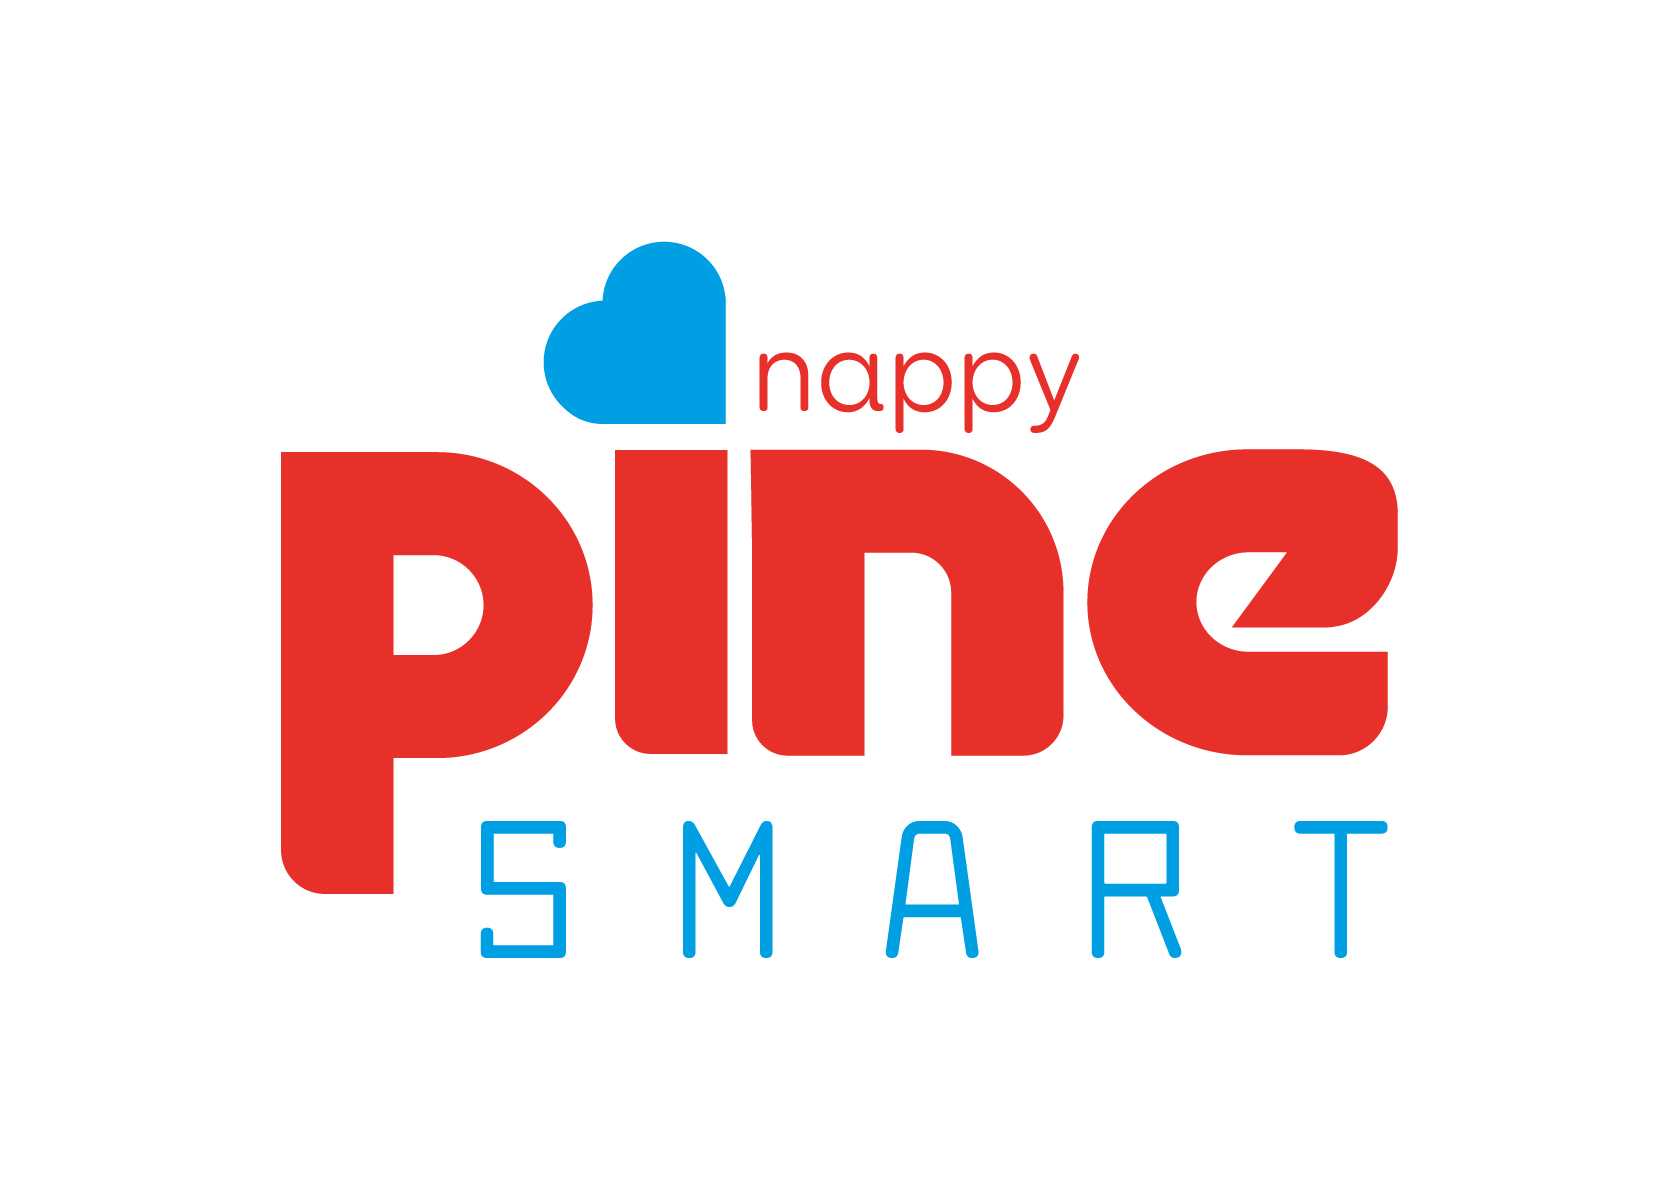 pine logo for nappy